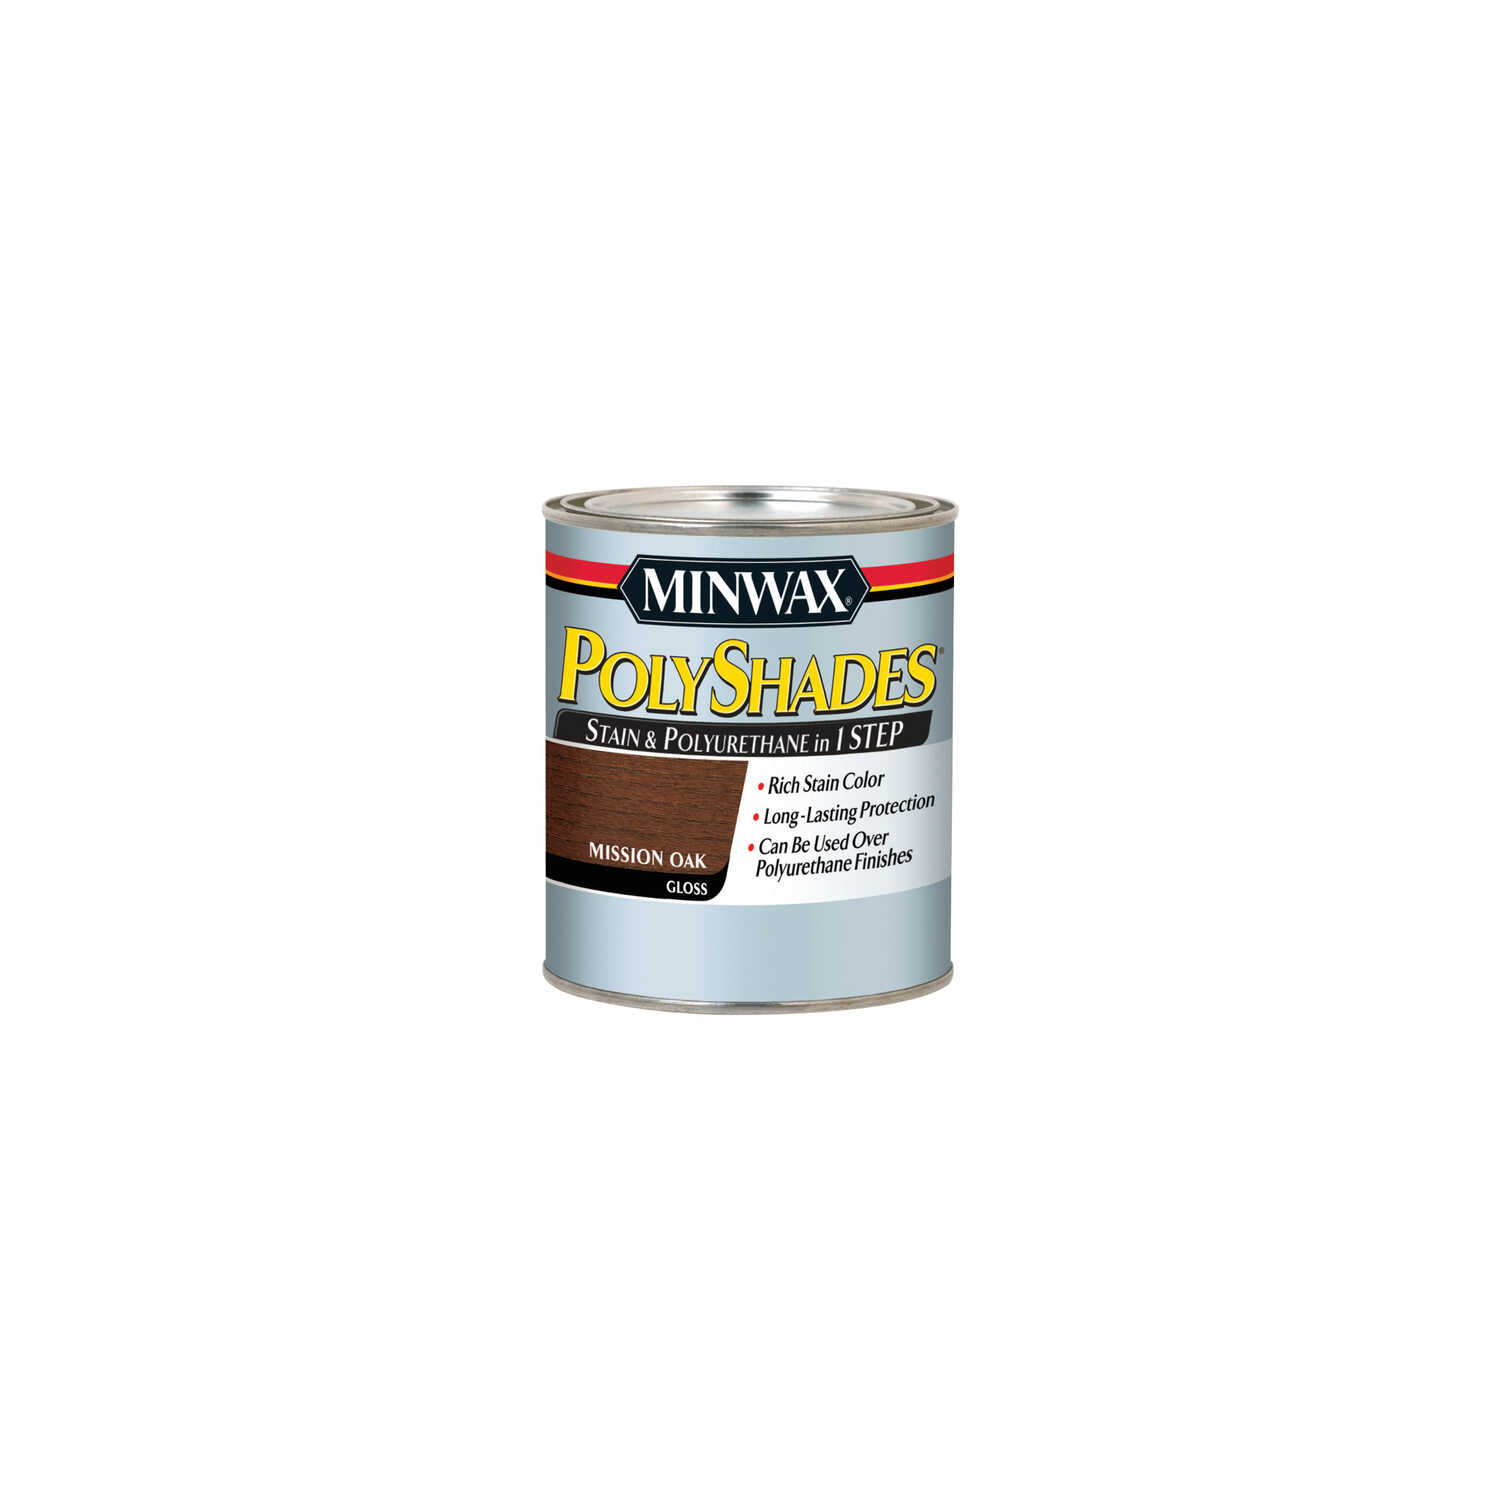 Minwax  PolyShades  Semi-Transparent  Gloss  Mission Oak  Oil-Based  Stain  0.5 pt.